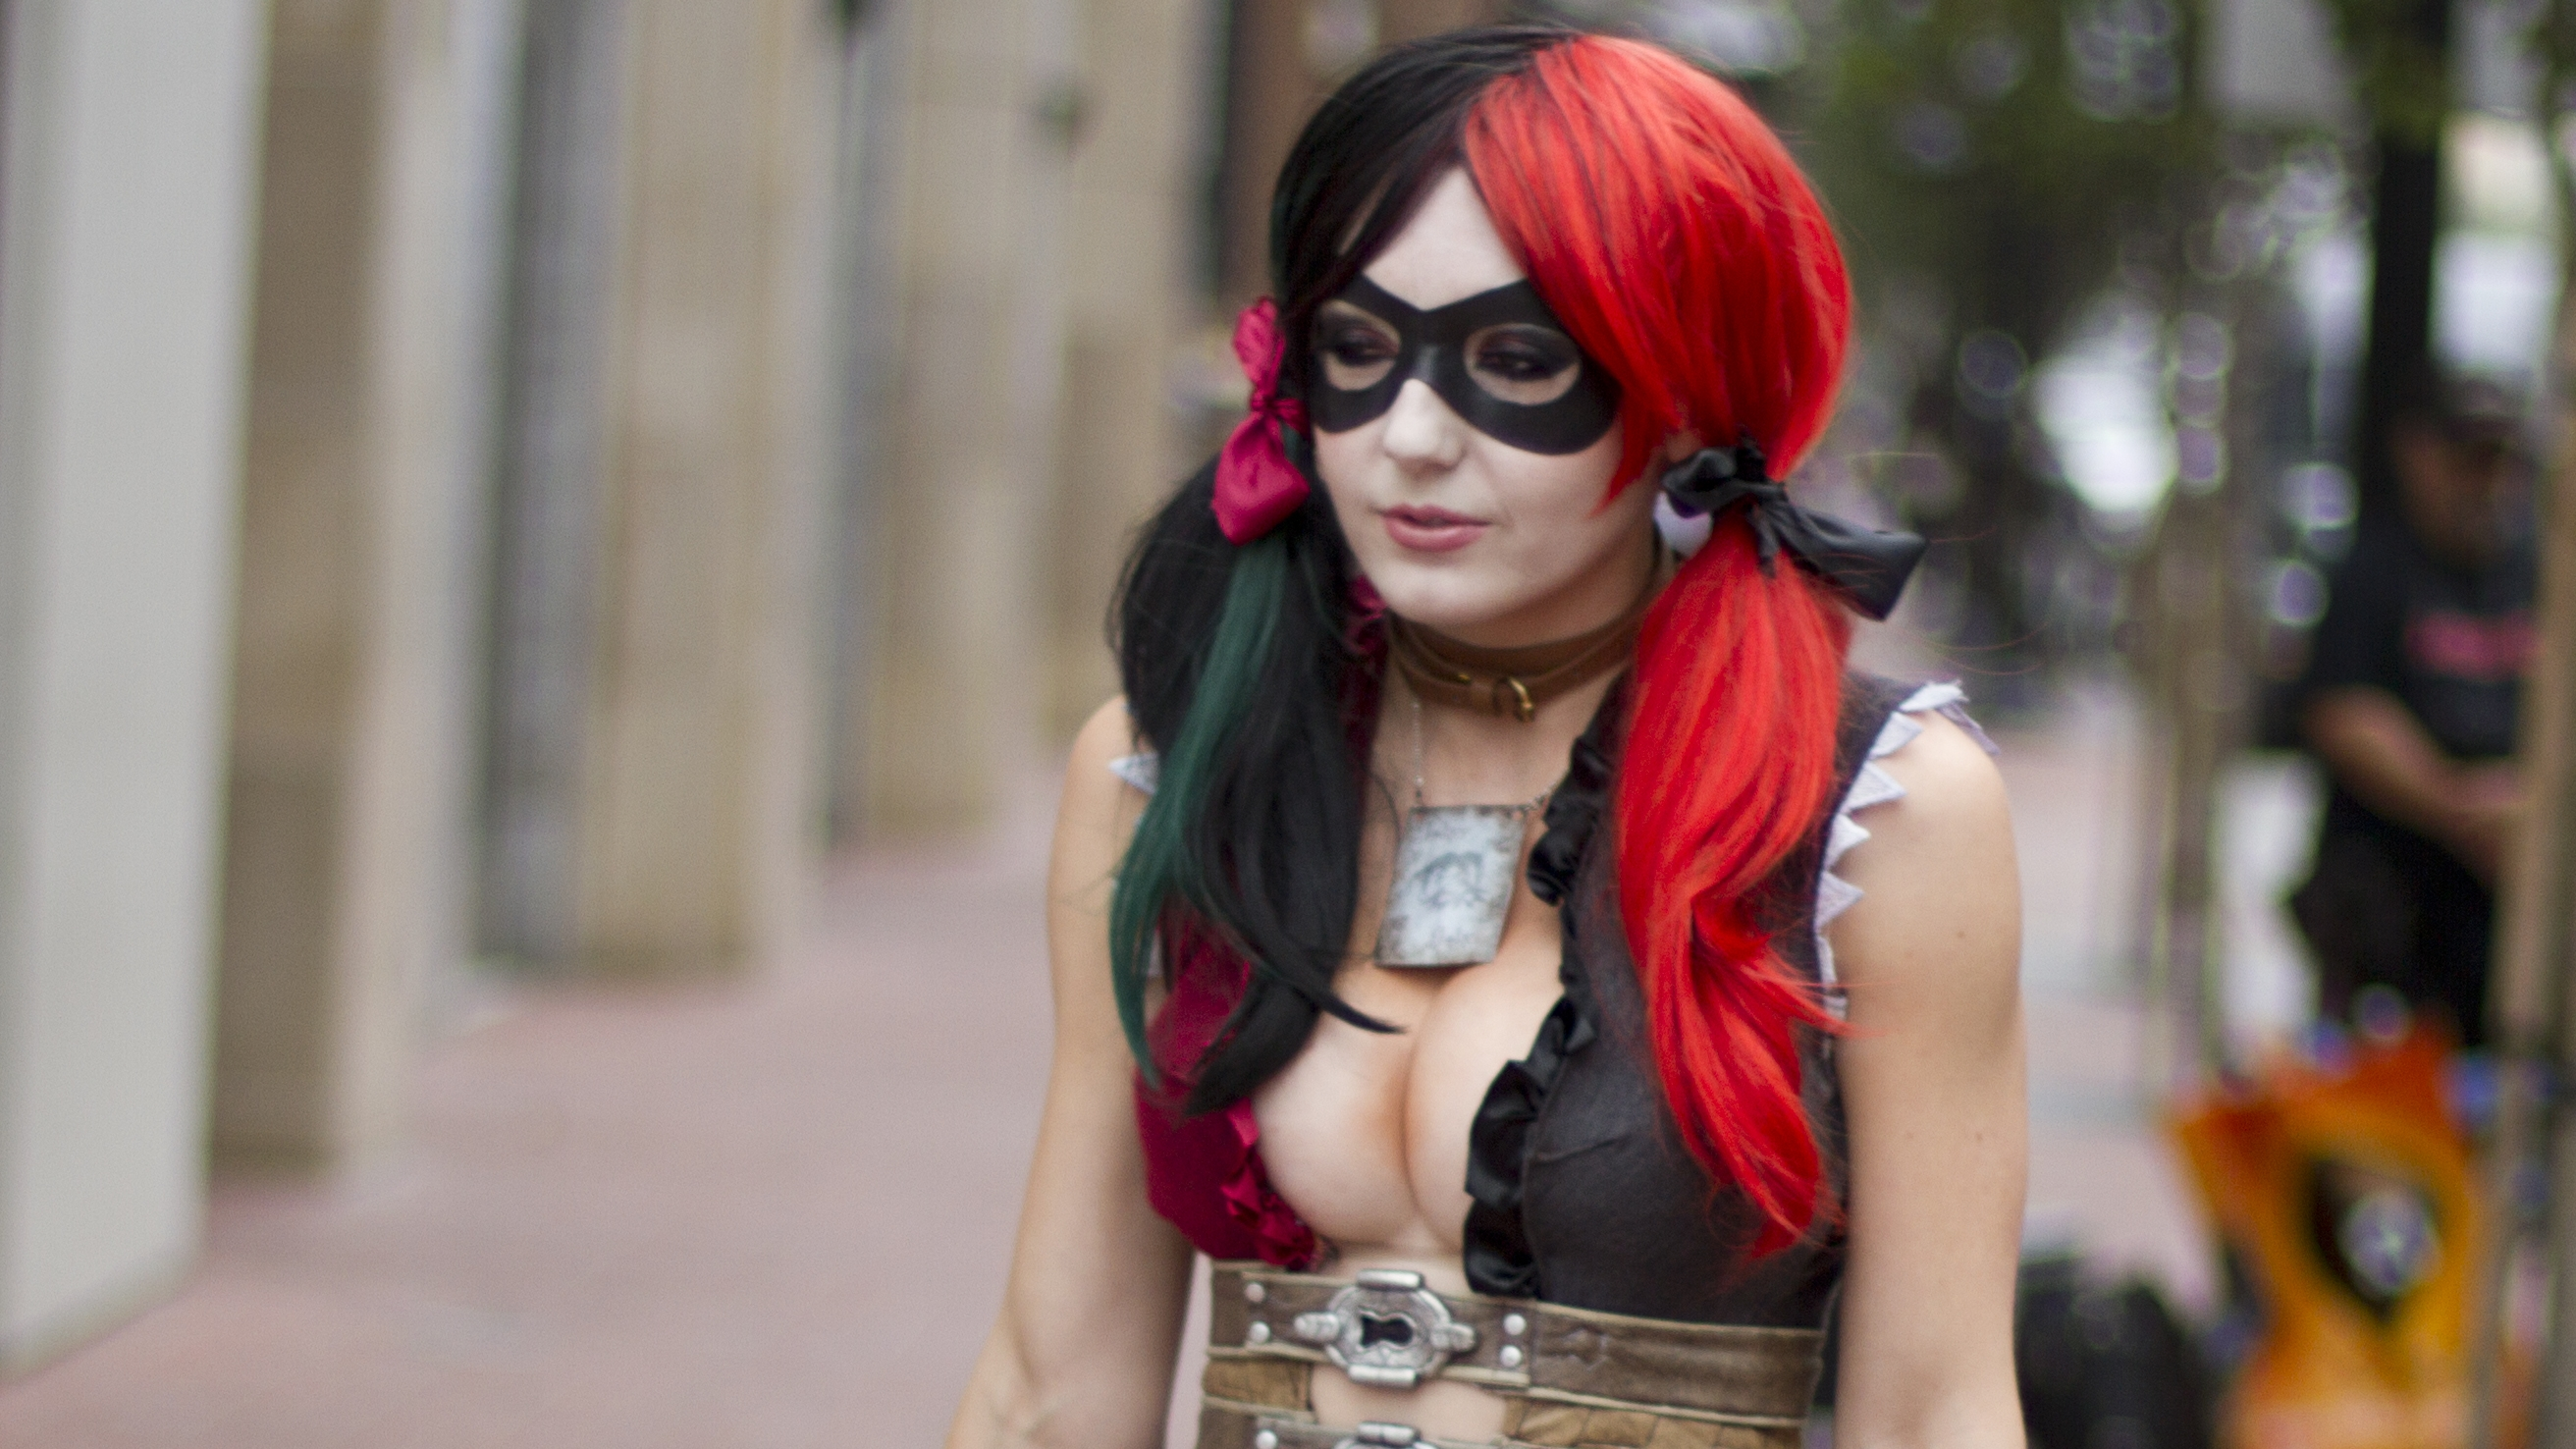 cosplay 1920x1080 image - photo #36